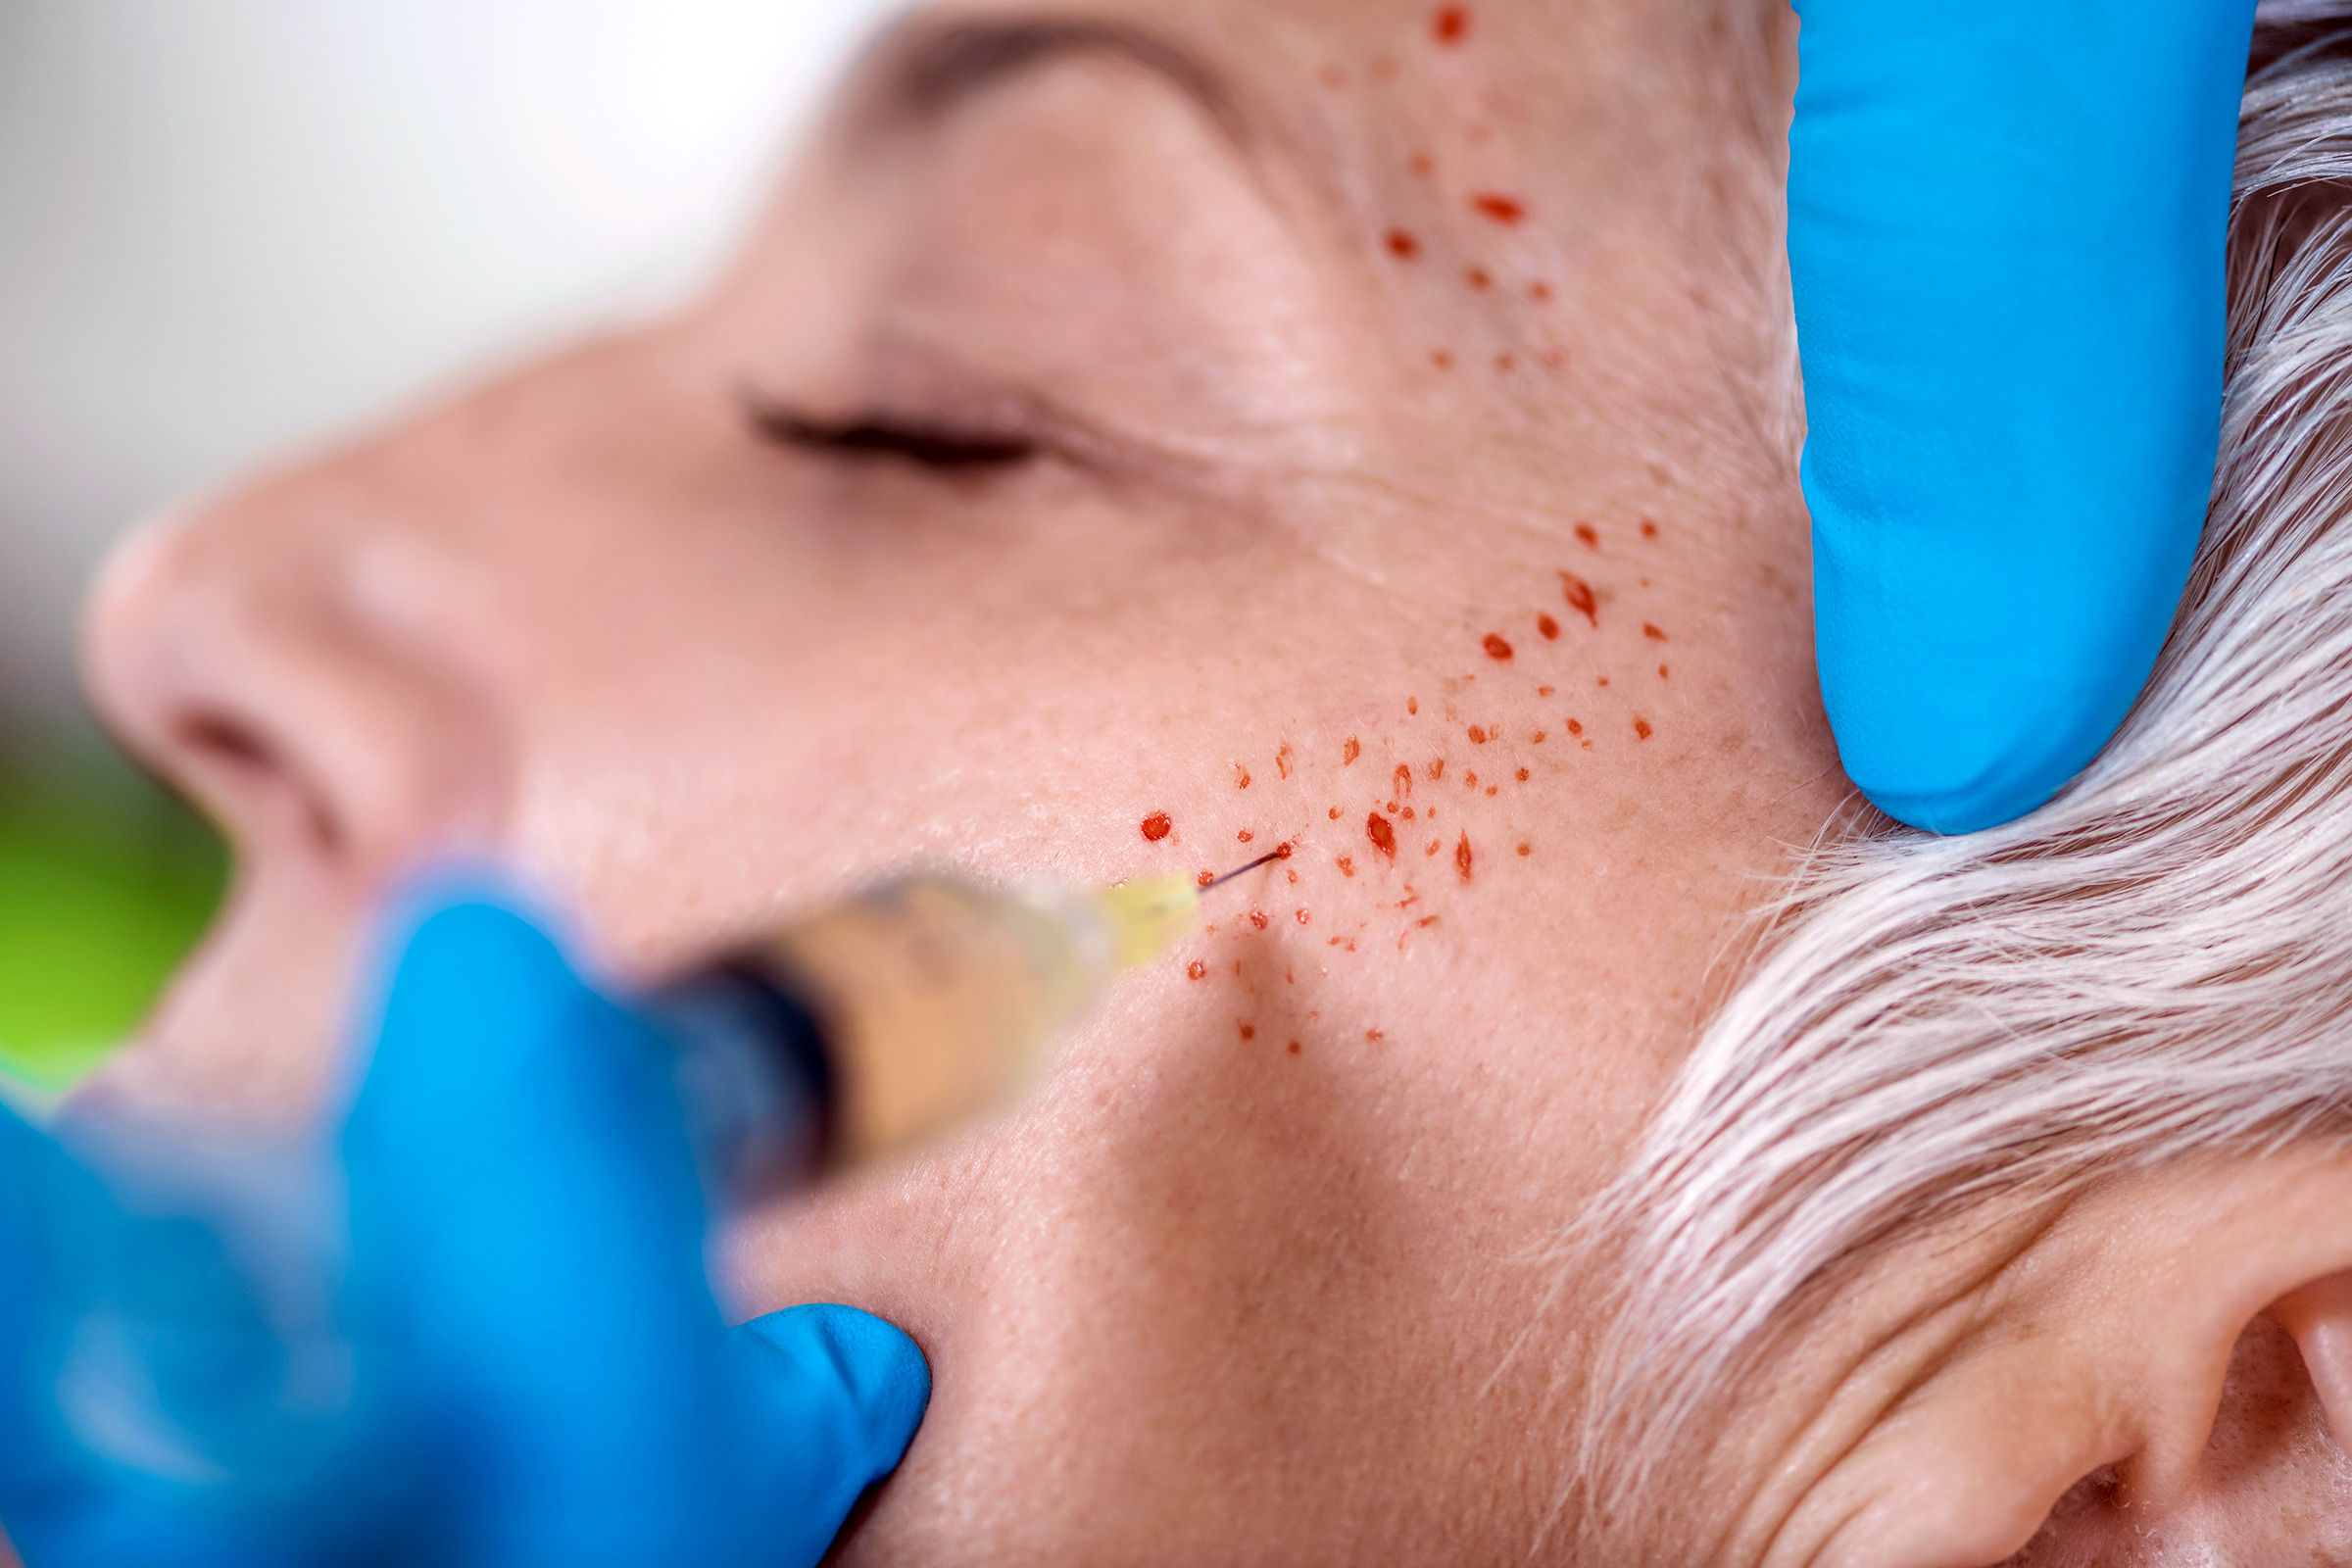 Vampire Facials Linked to Two Confirmed Cases of HIV In New Mexico -  Rolling Stone